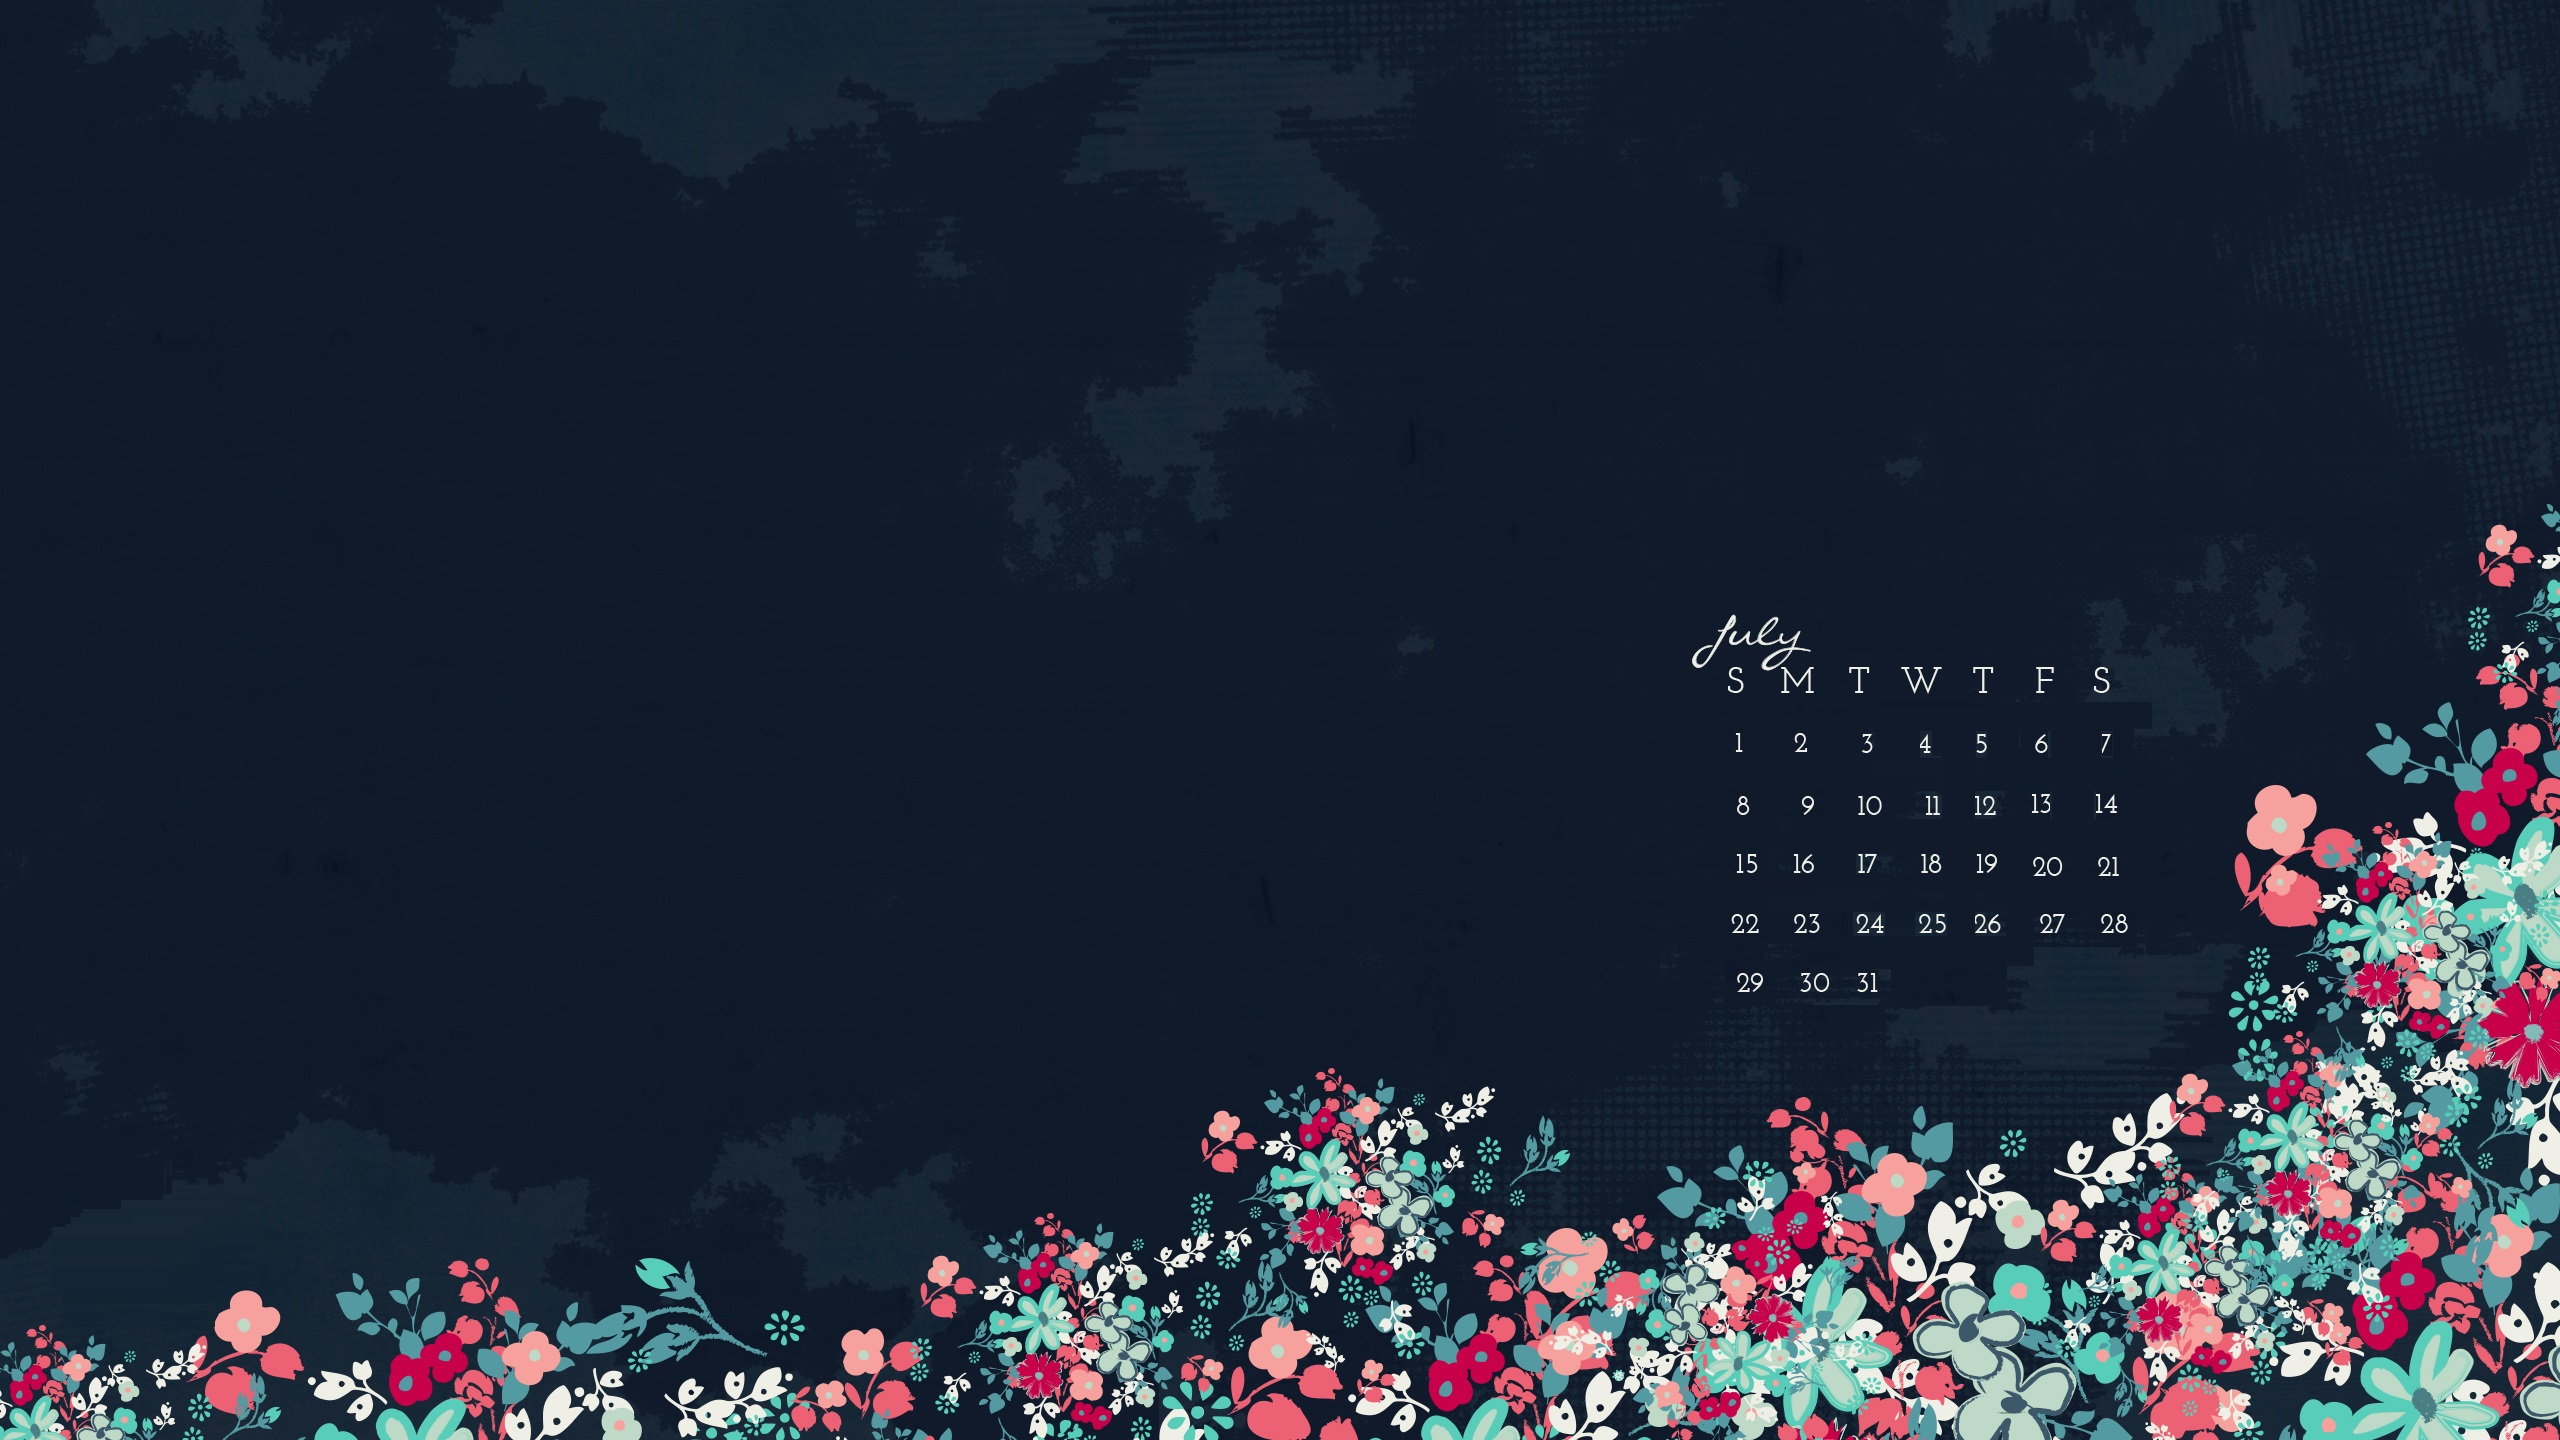 July 2018 Desktop Calendar Wallpapers